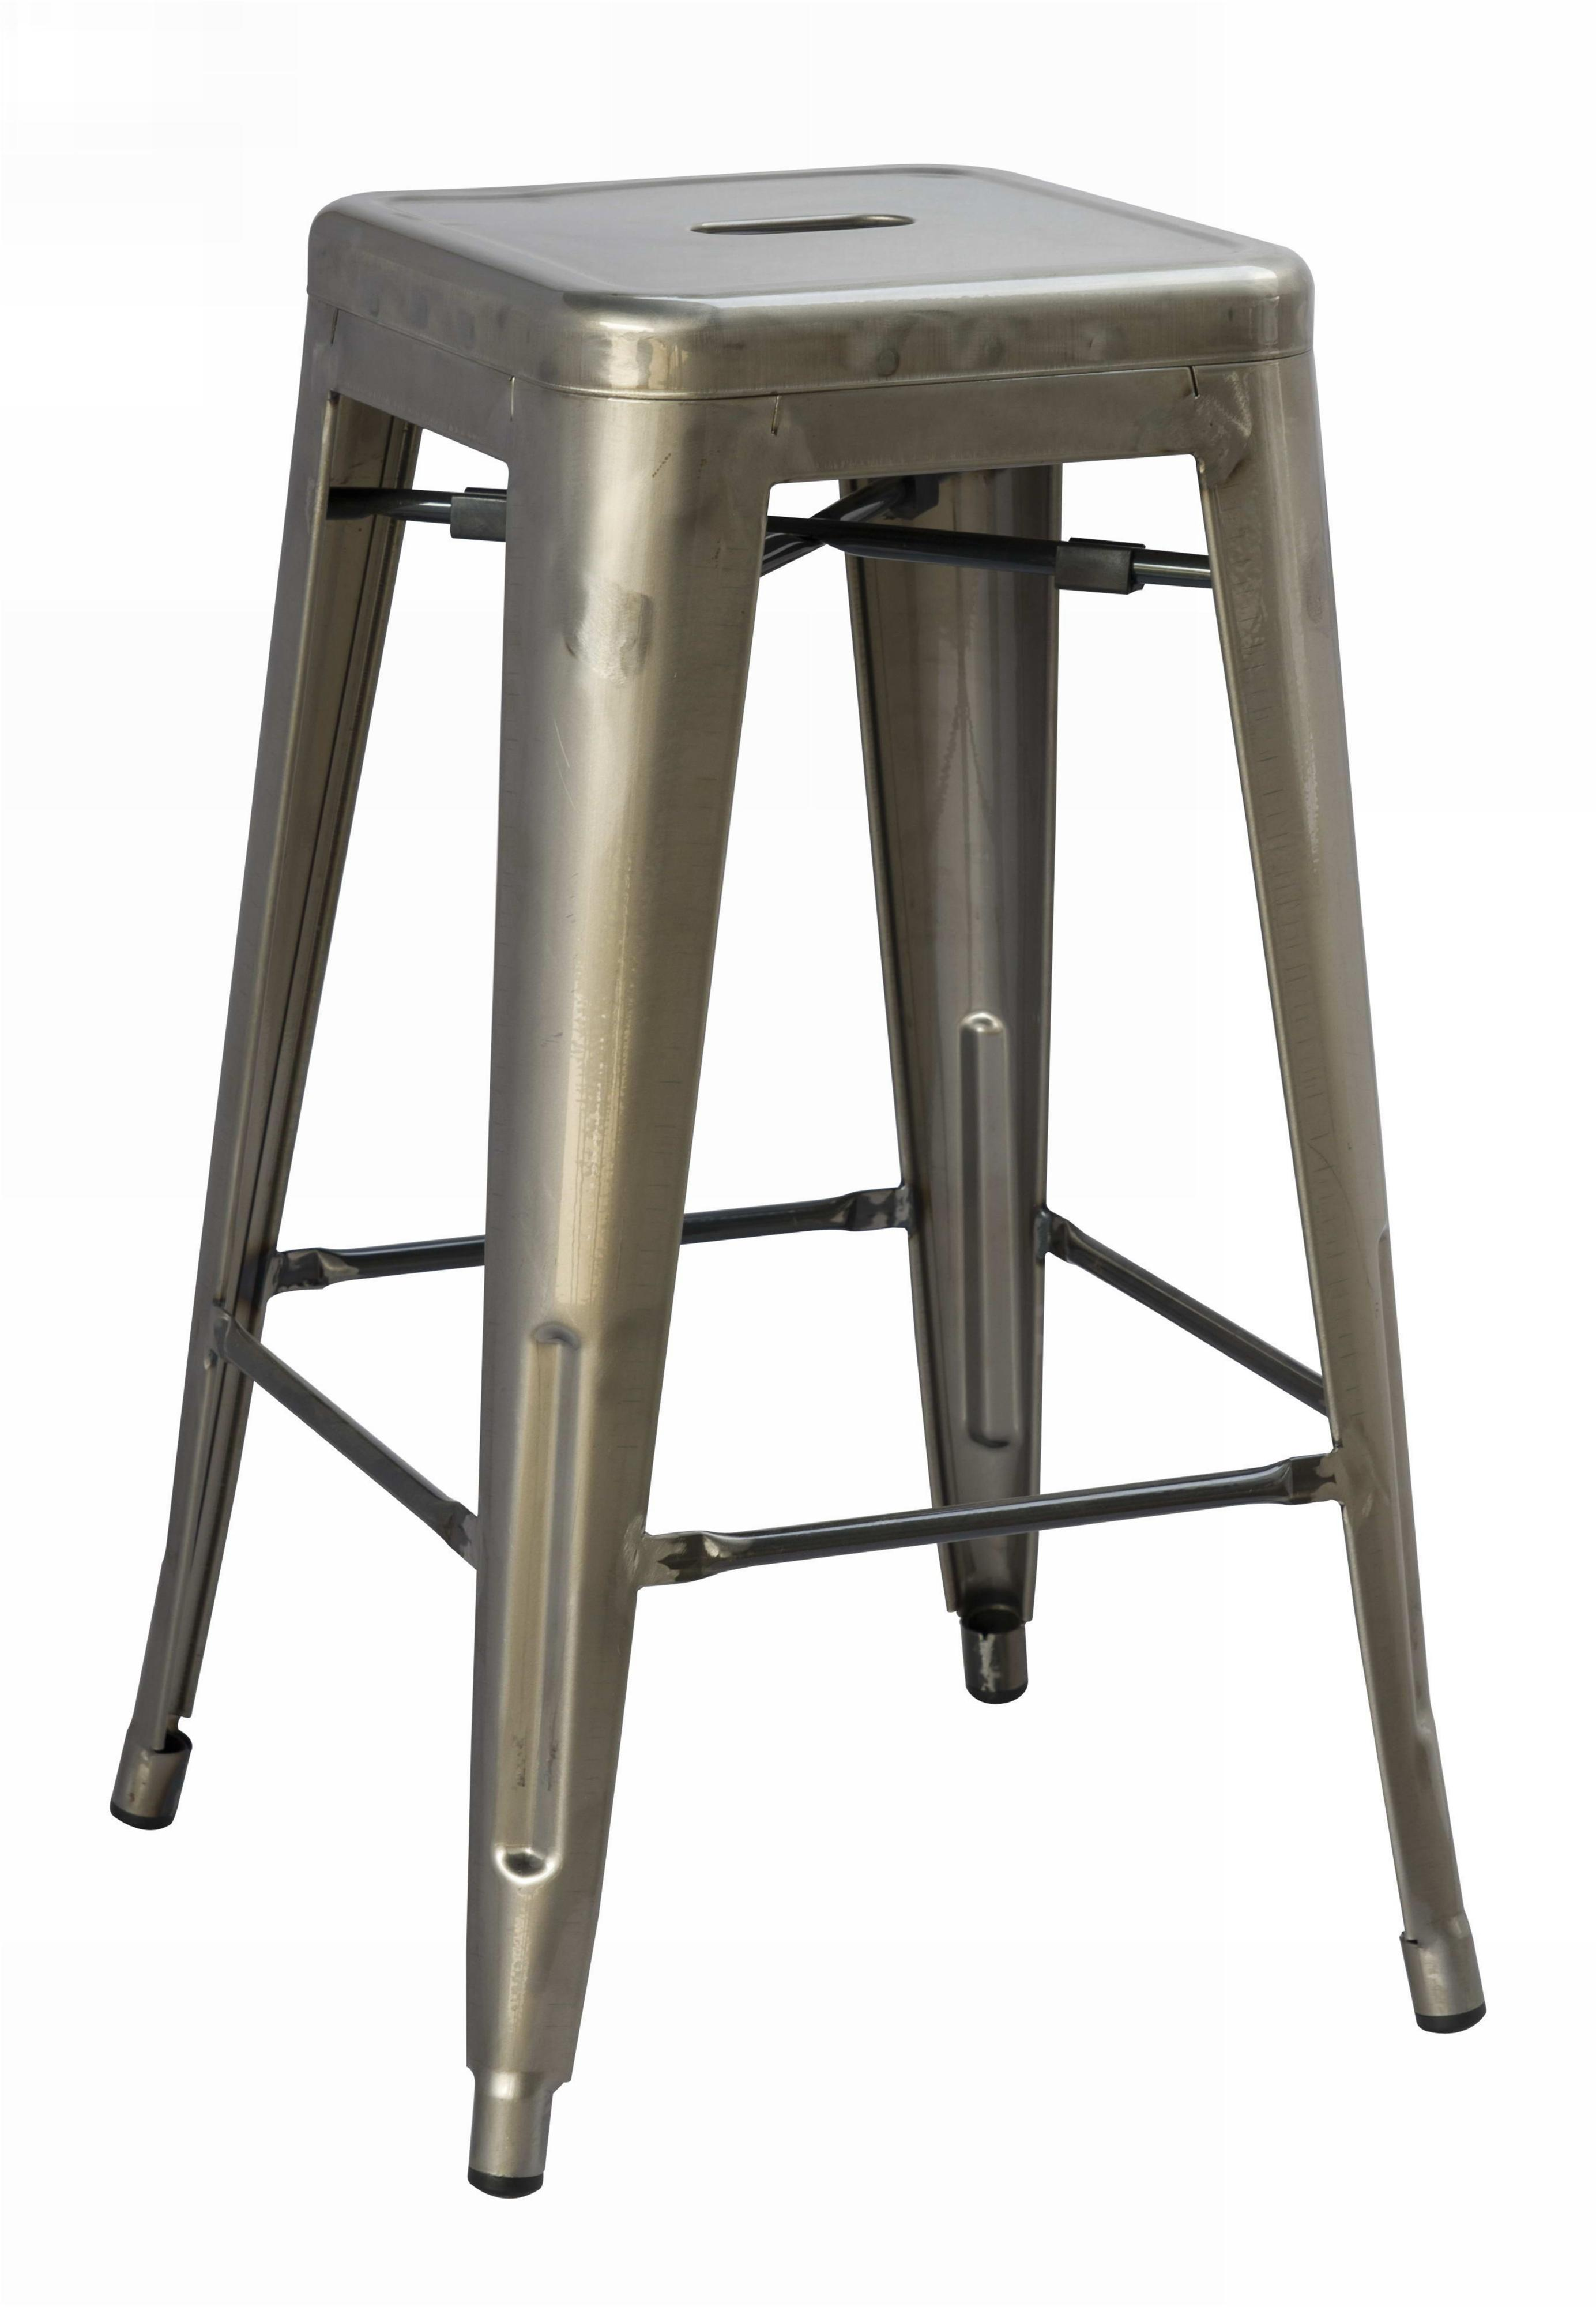 Wonderful image of Vintage Metal Counter Height Stool by Magnussen Home Wolf and  with #796E52 color and 2768x4000 pixels